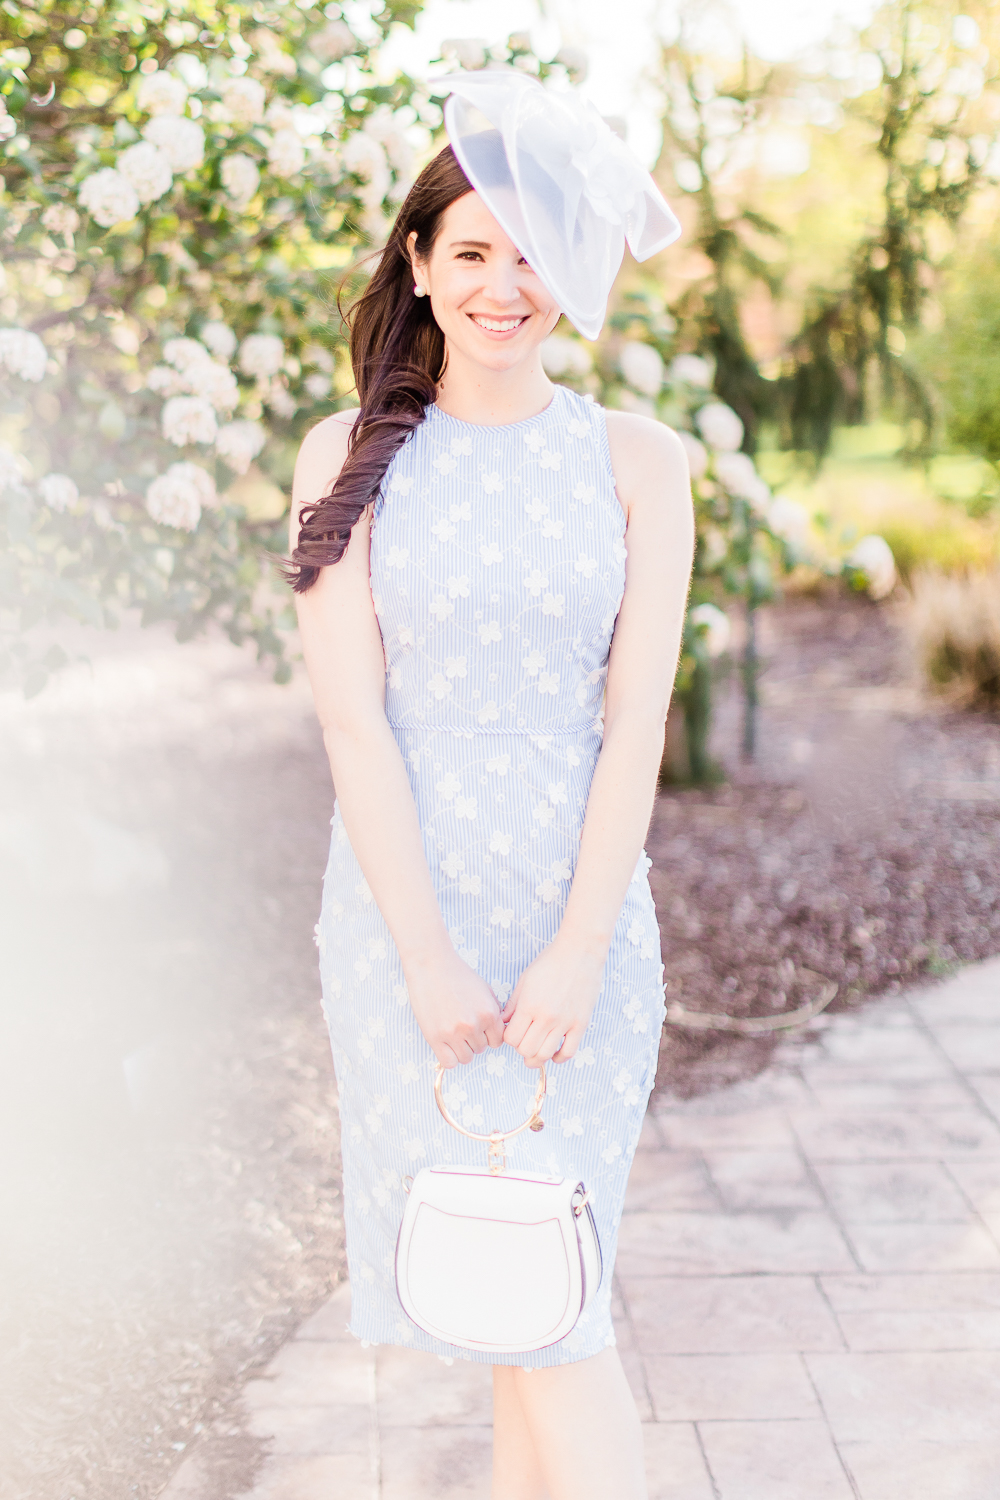 """This is hands down my favorite Derby Day look!"" - ""The pinstripe print and floral embroidery on the Cecilia Midi dress is absolutely gorgeous and perfect for spring."" - Stephanie"